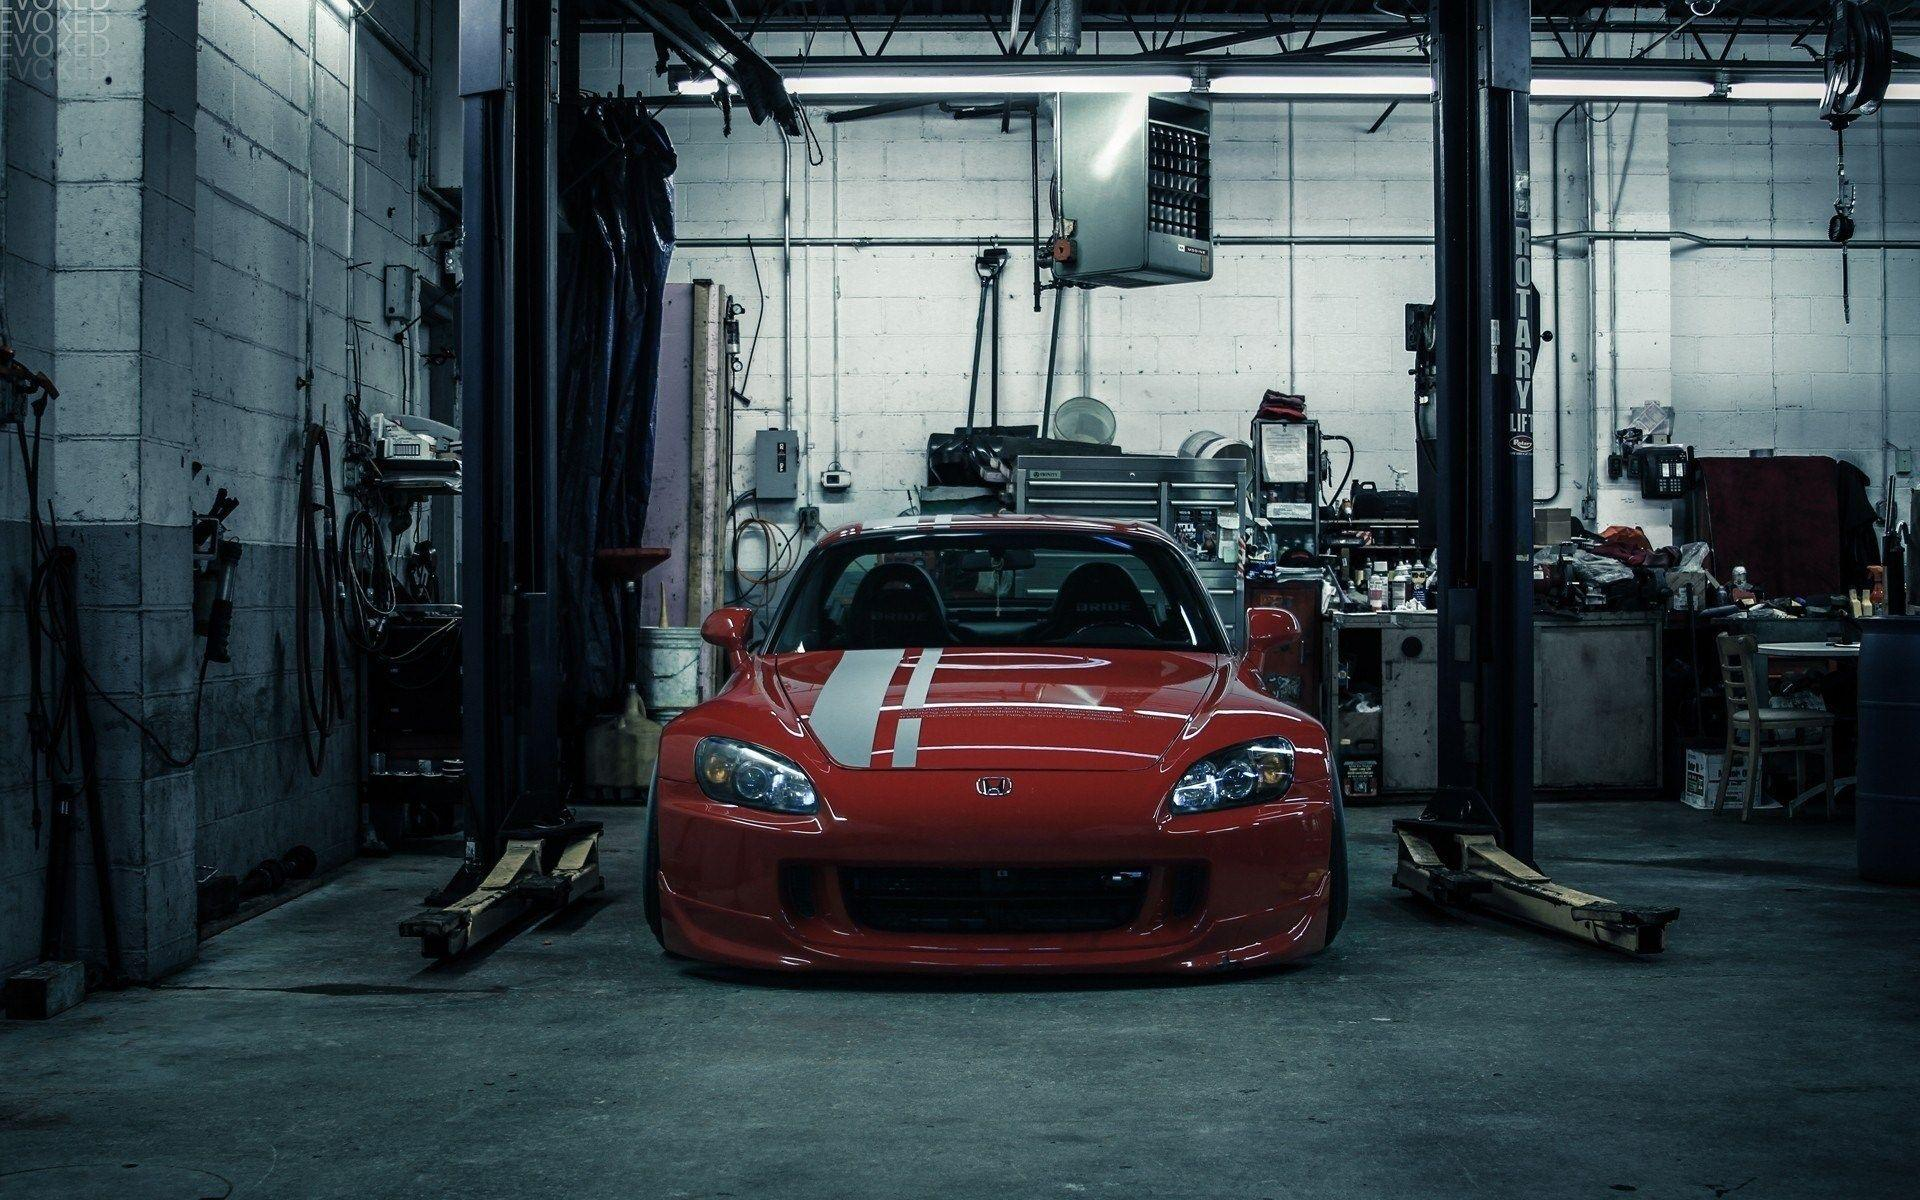 Garage Wallpapers Wallpaper Cave